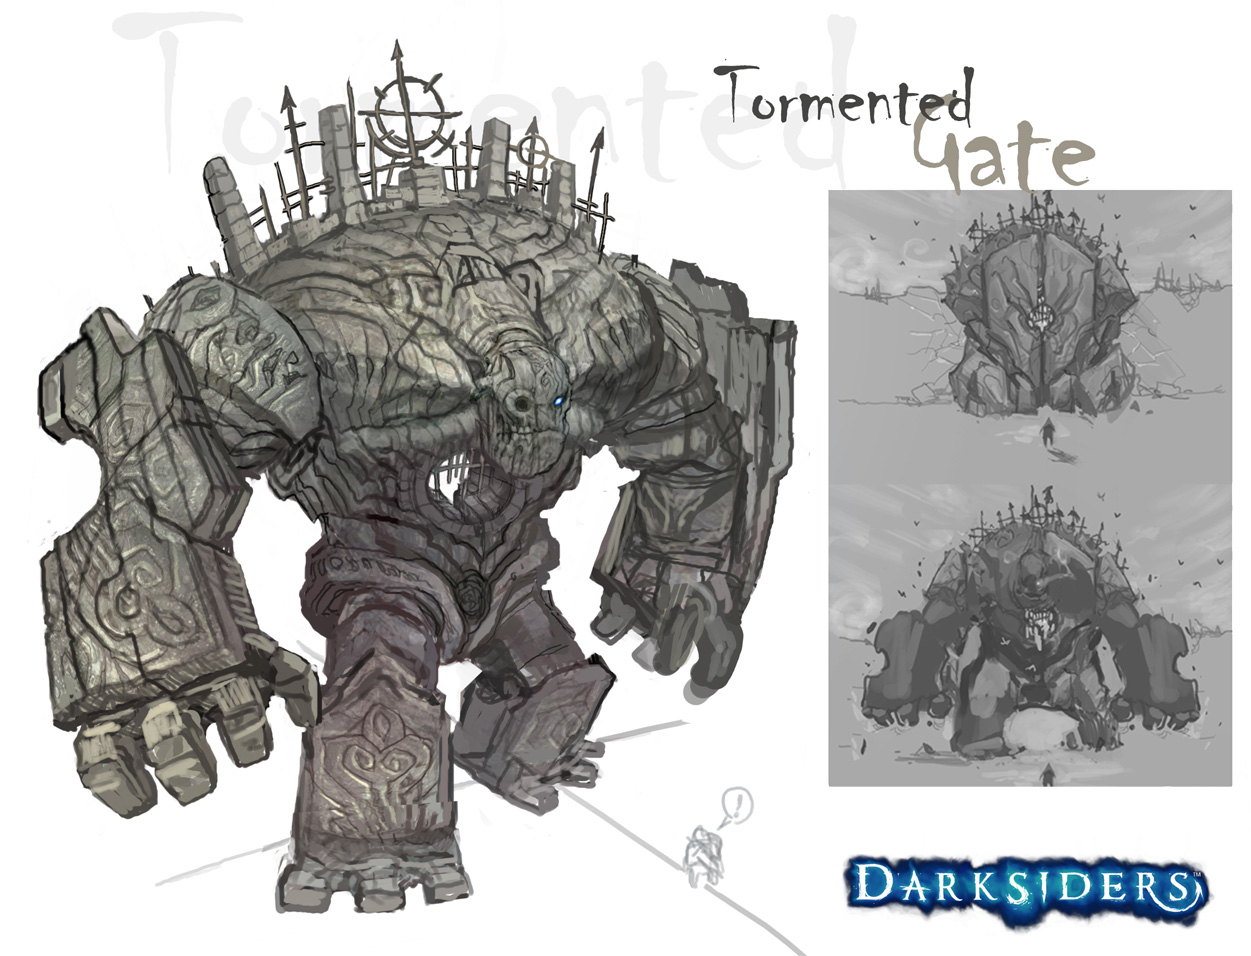 Darksiders_tormented_gate.jpg